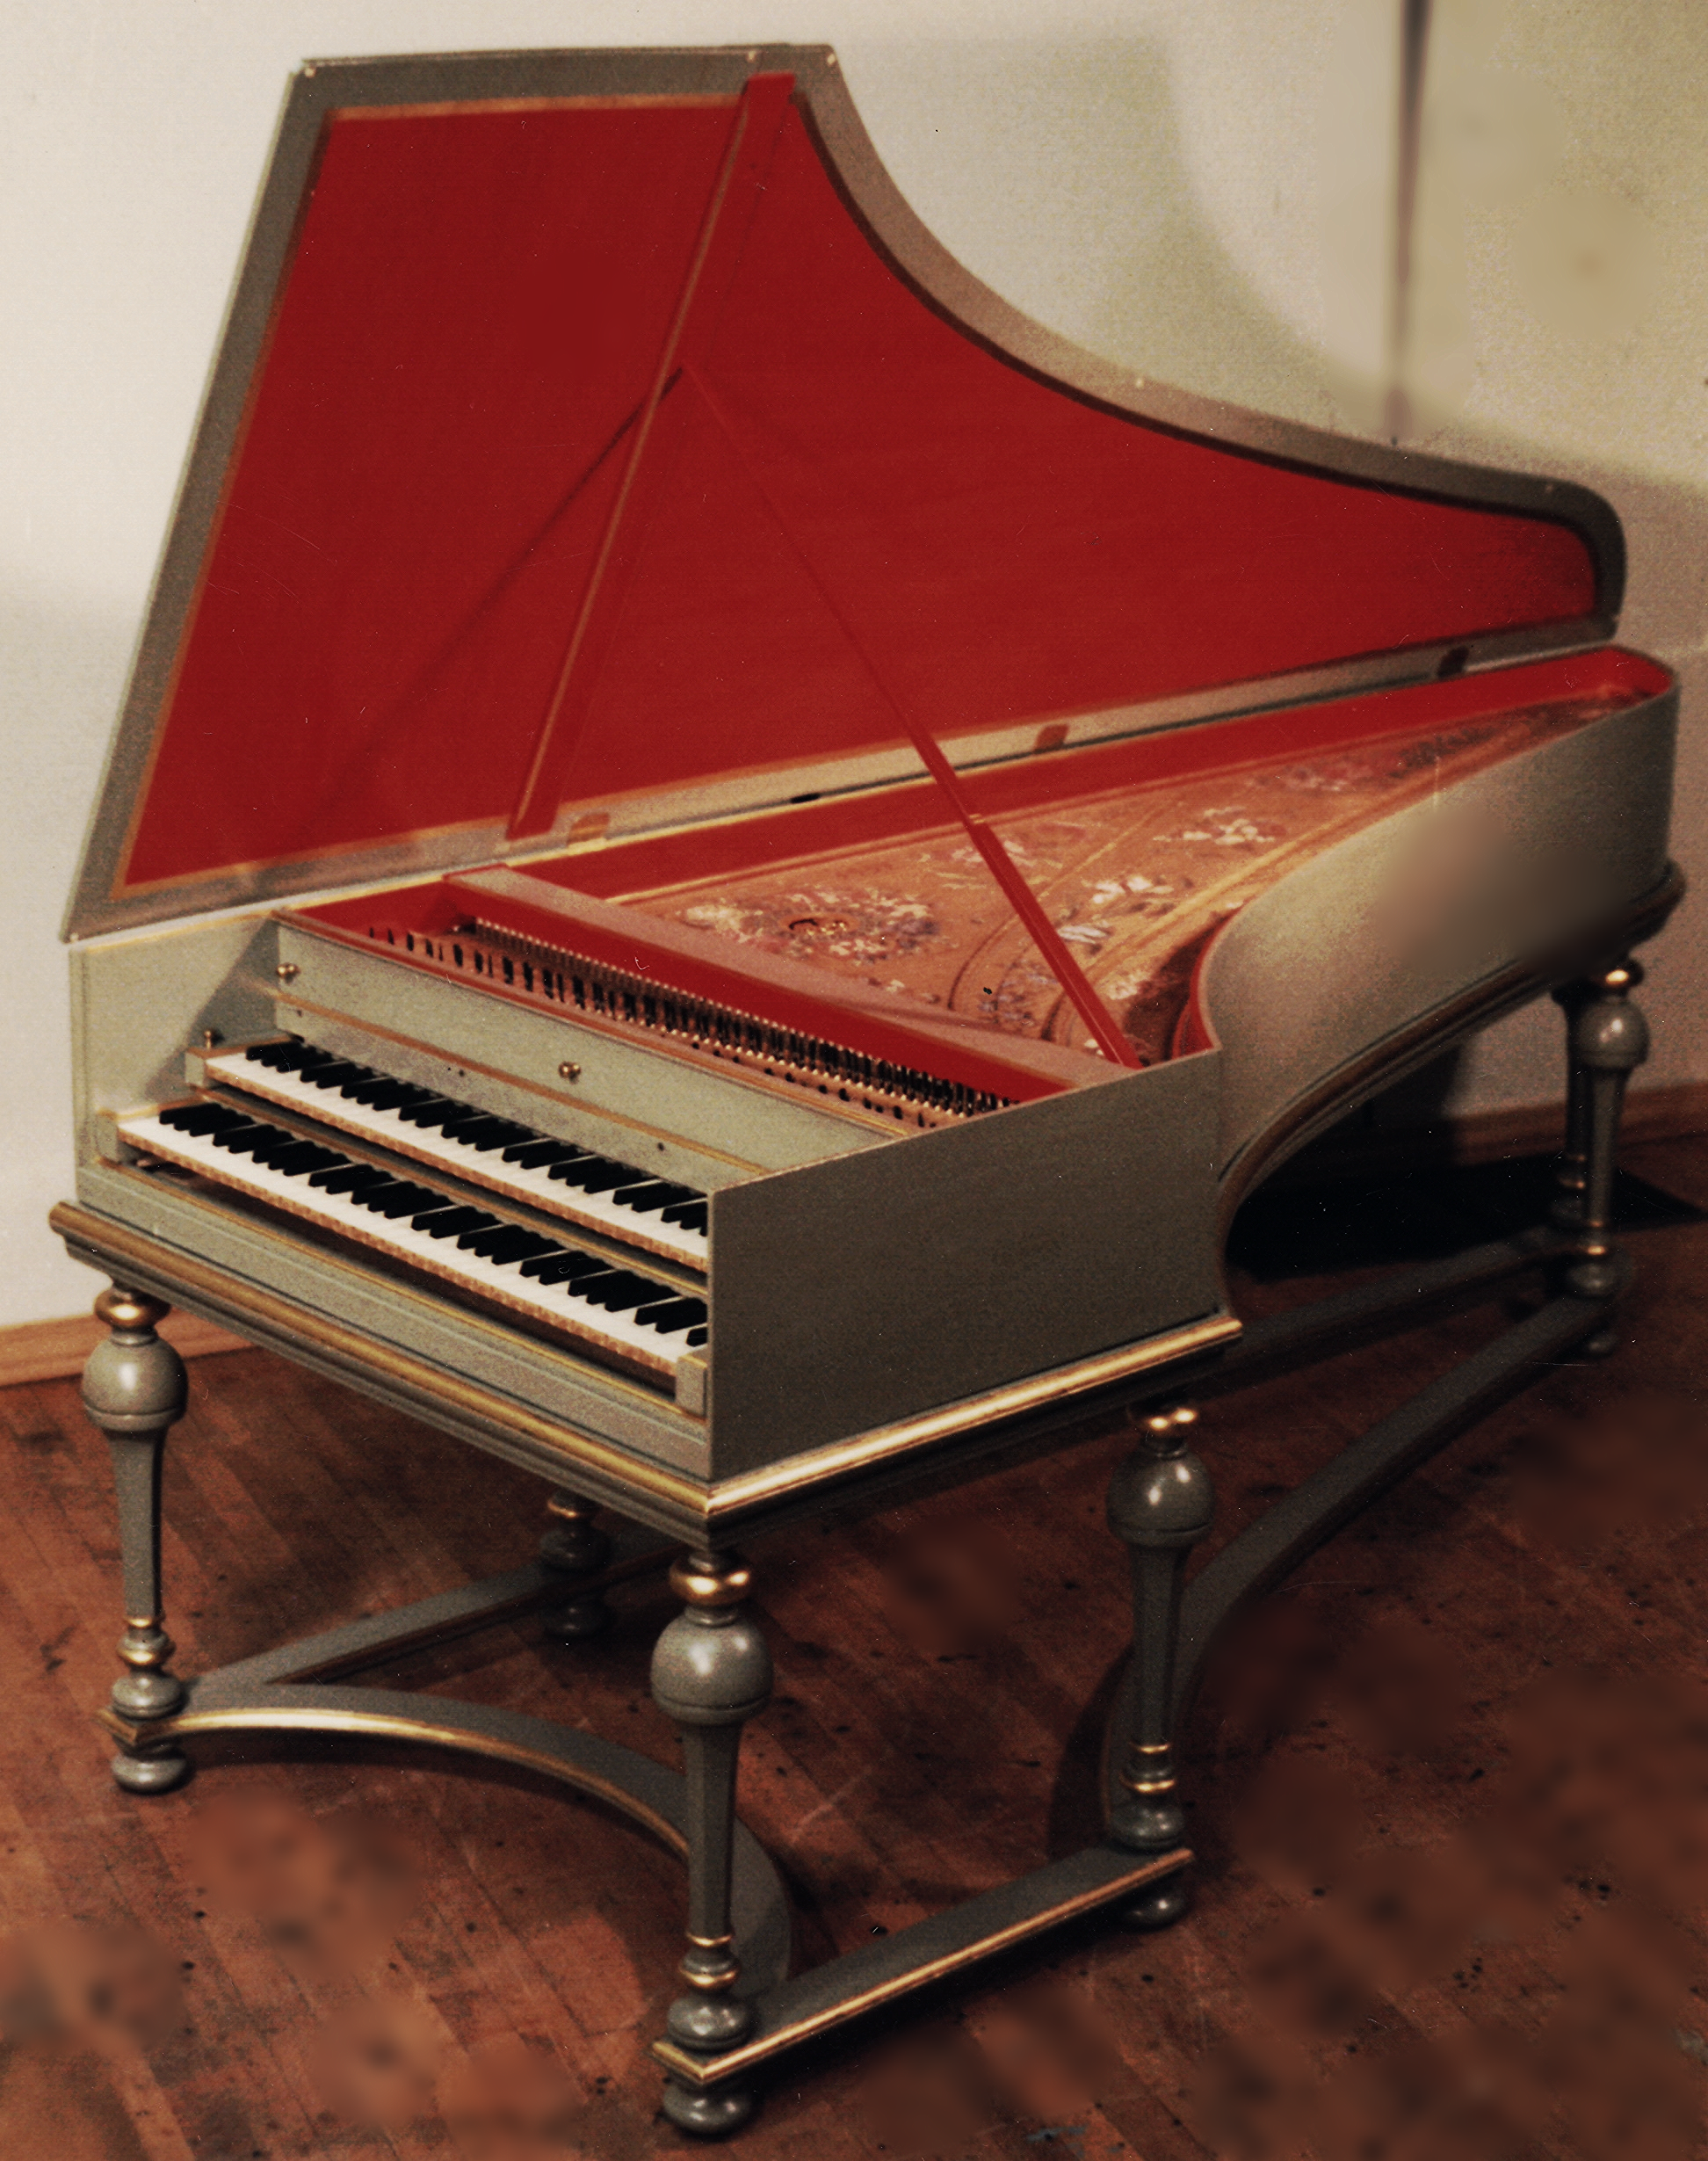 Harpsichord inspired by the 1 7 2 8 Christian Zell in Hamburg germany my opus 2 2 0 made in 1 9 8 7 for edward Parmentier in ann arbor, michigan